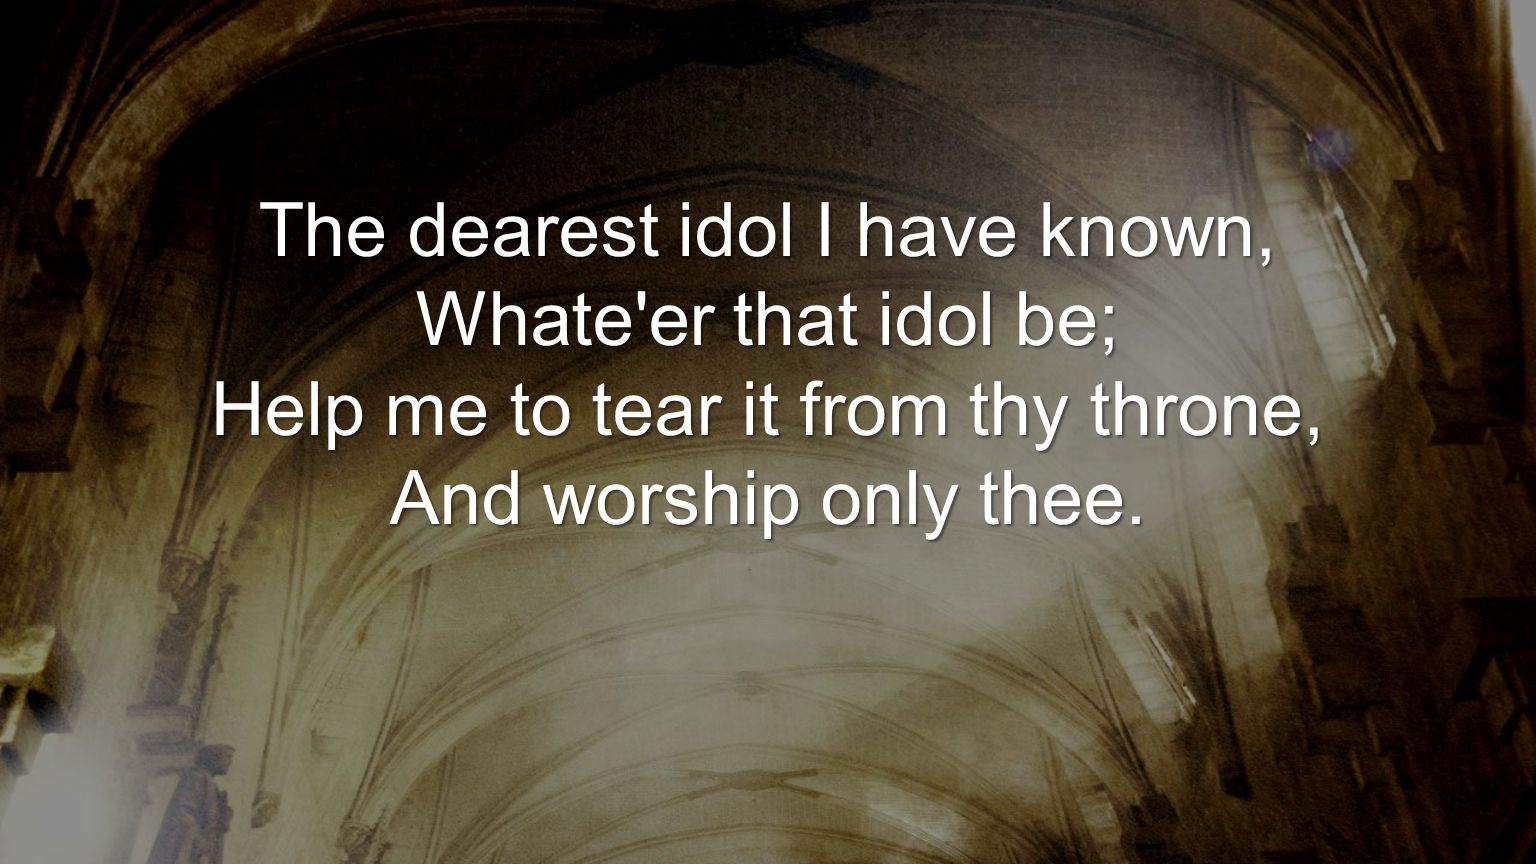 The dearest idol I have known, Whate er that idol be; Help me to tear it from thy throne, And worship only thee.